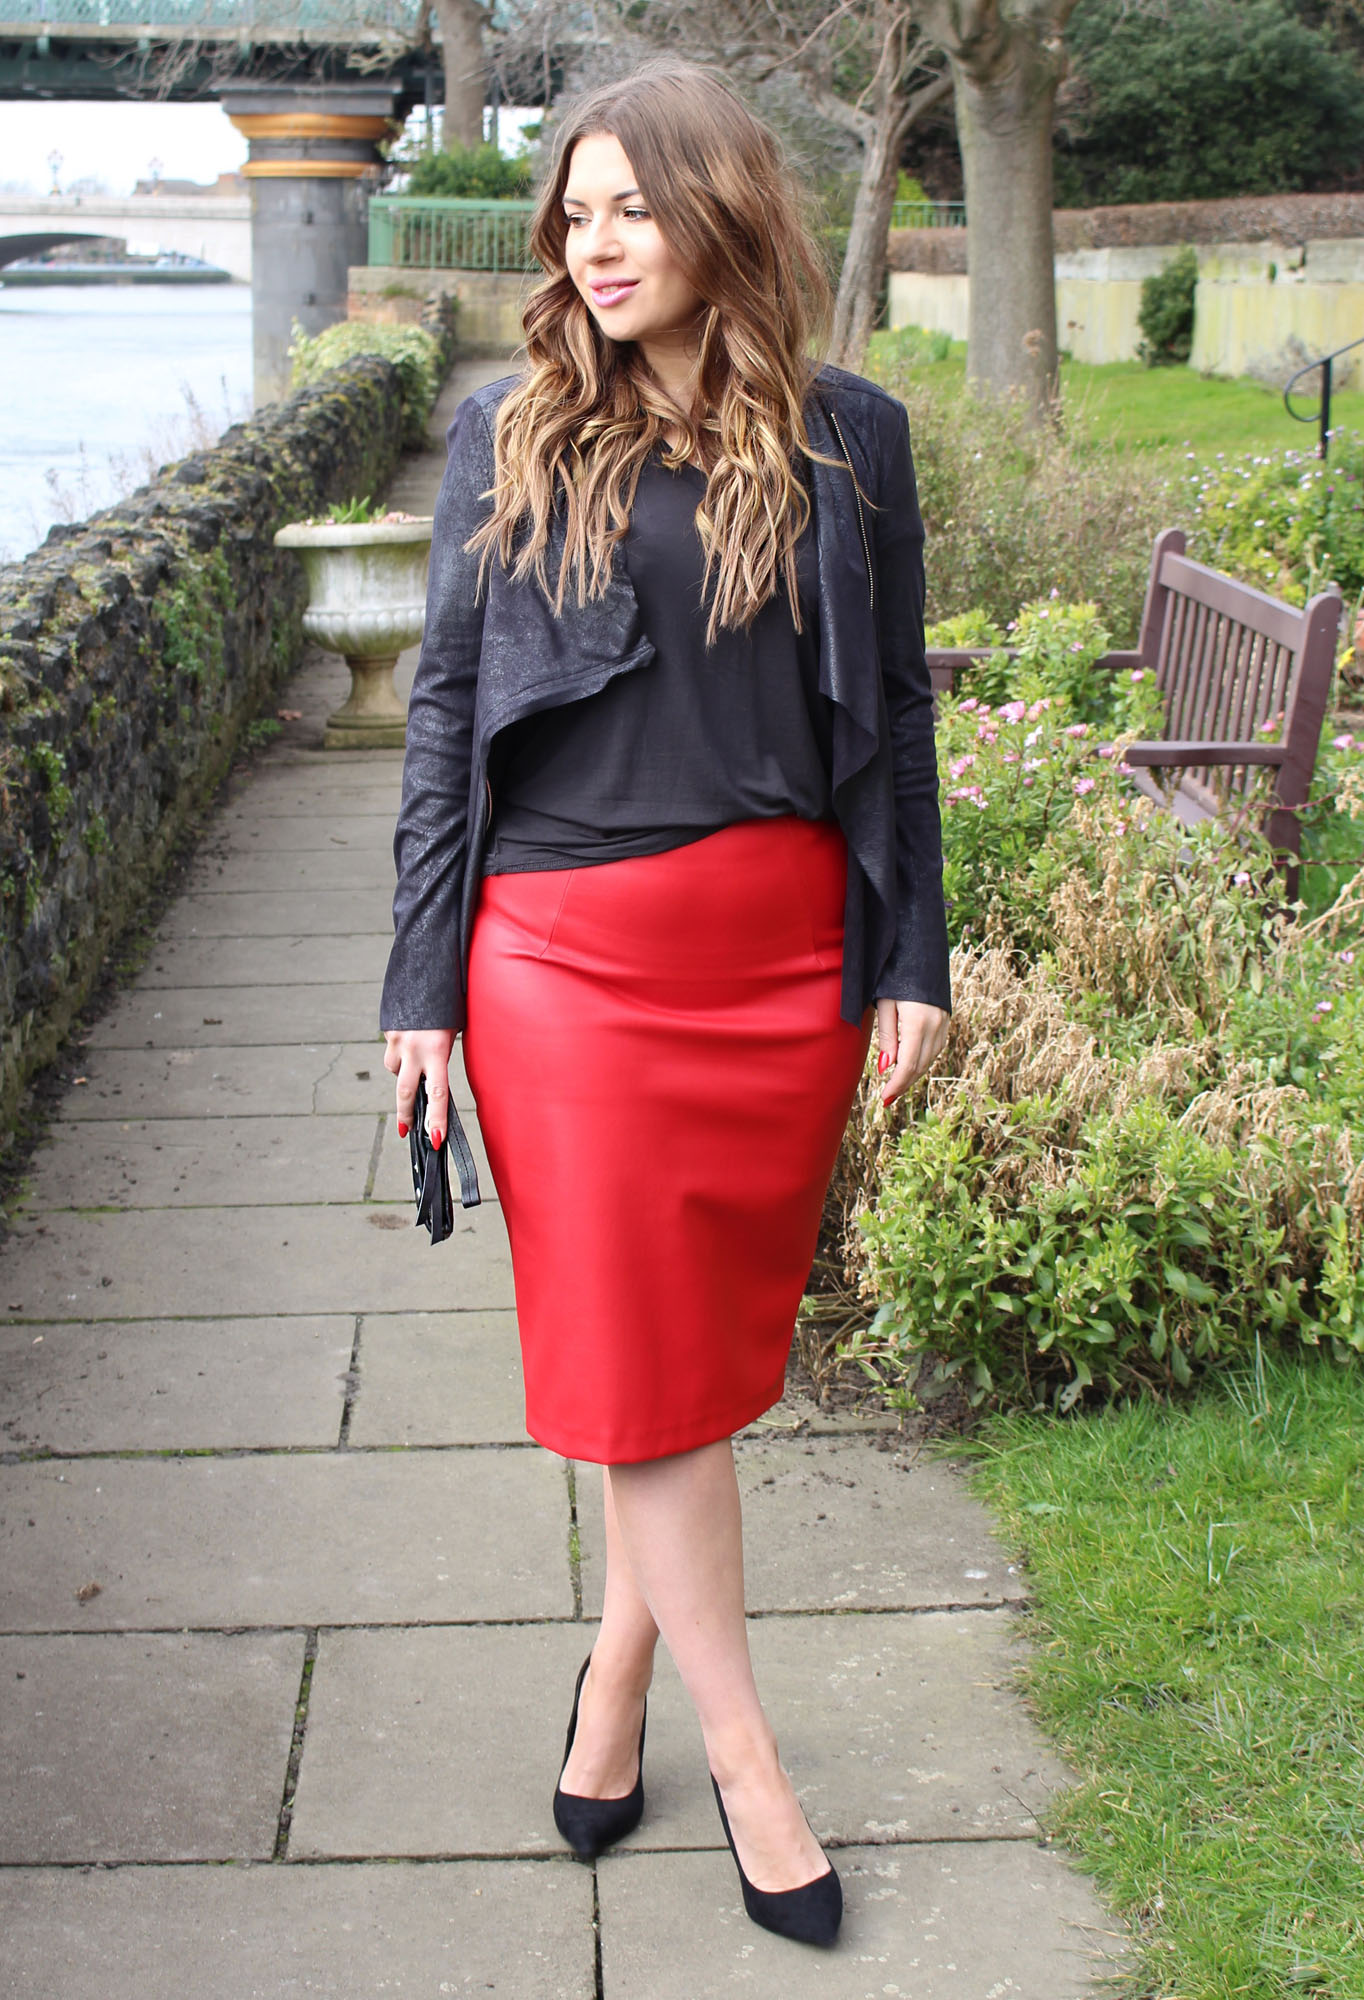 Red leather skirt